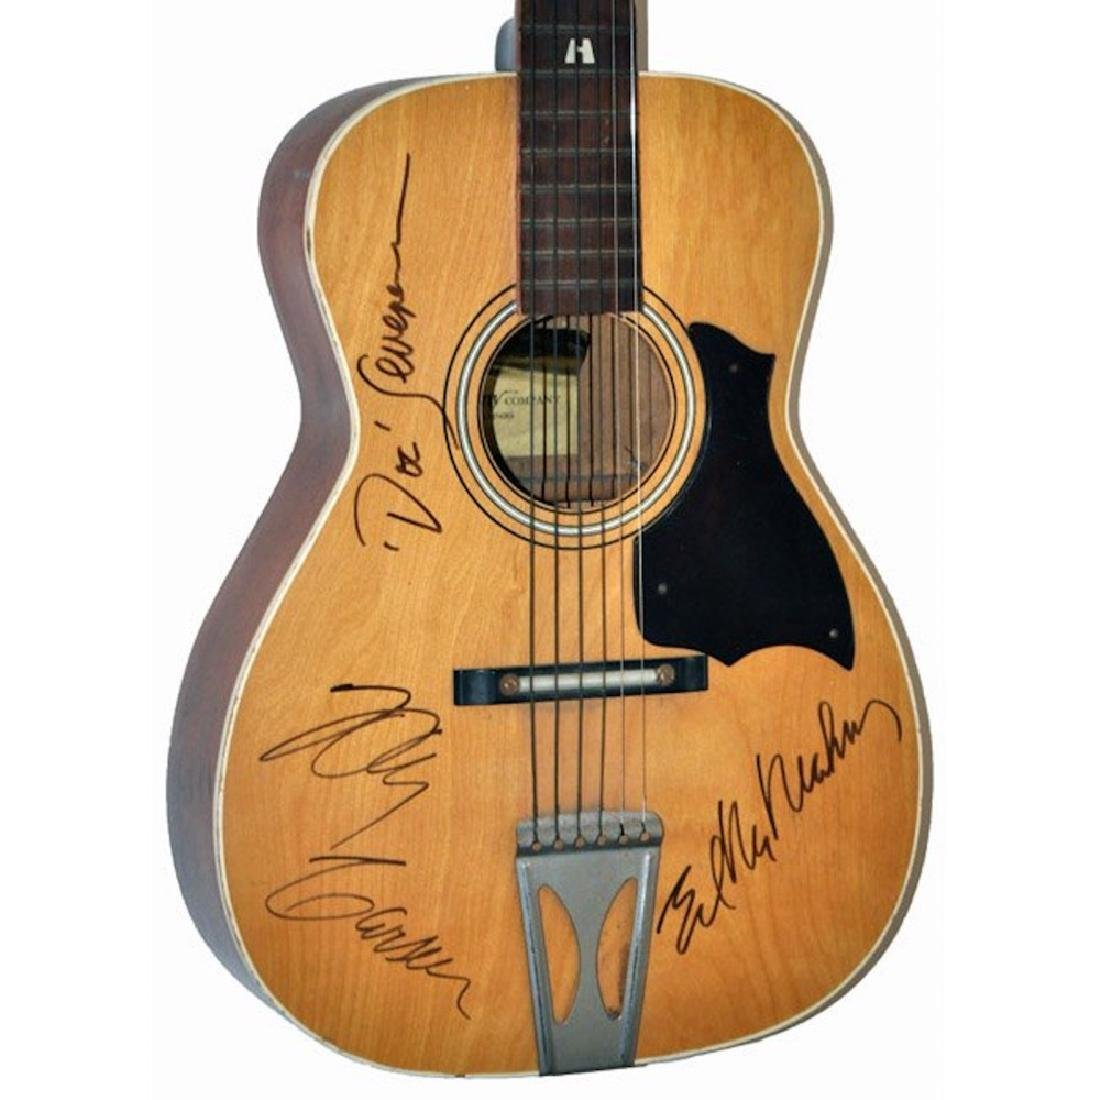 Signed Johnny Carson Guitar